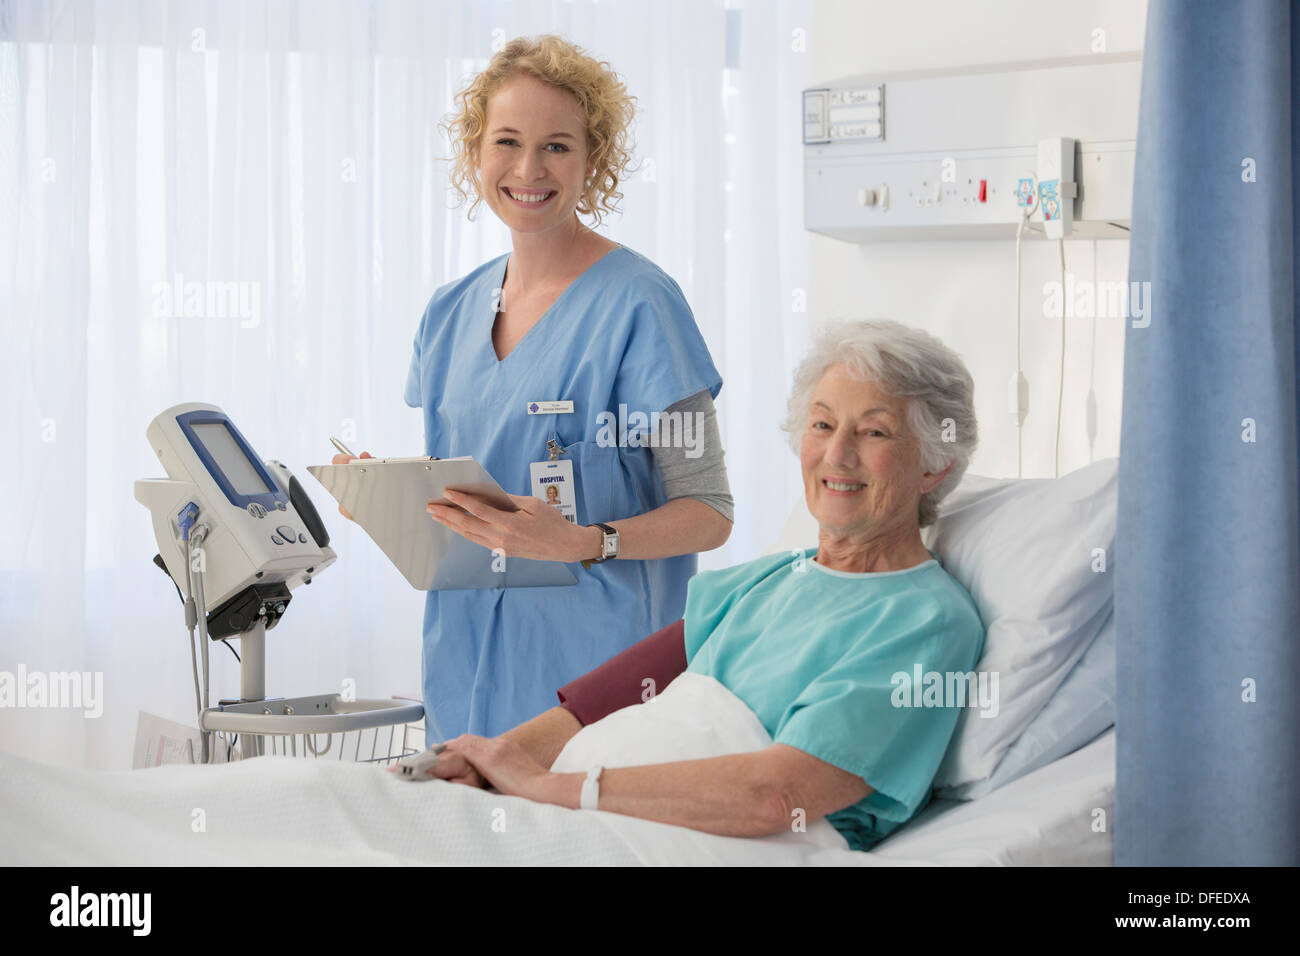 Portrait of smiling nurse and senior patient in hospital room - Stock Image